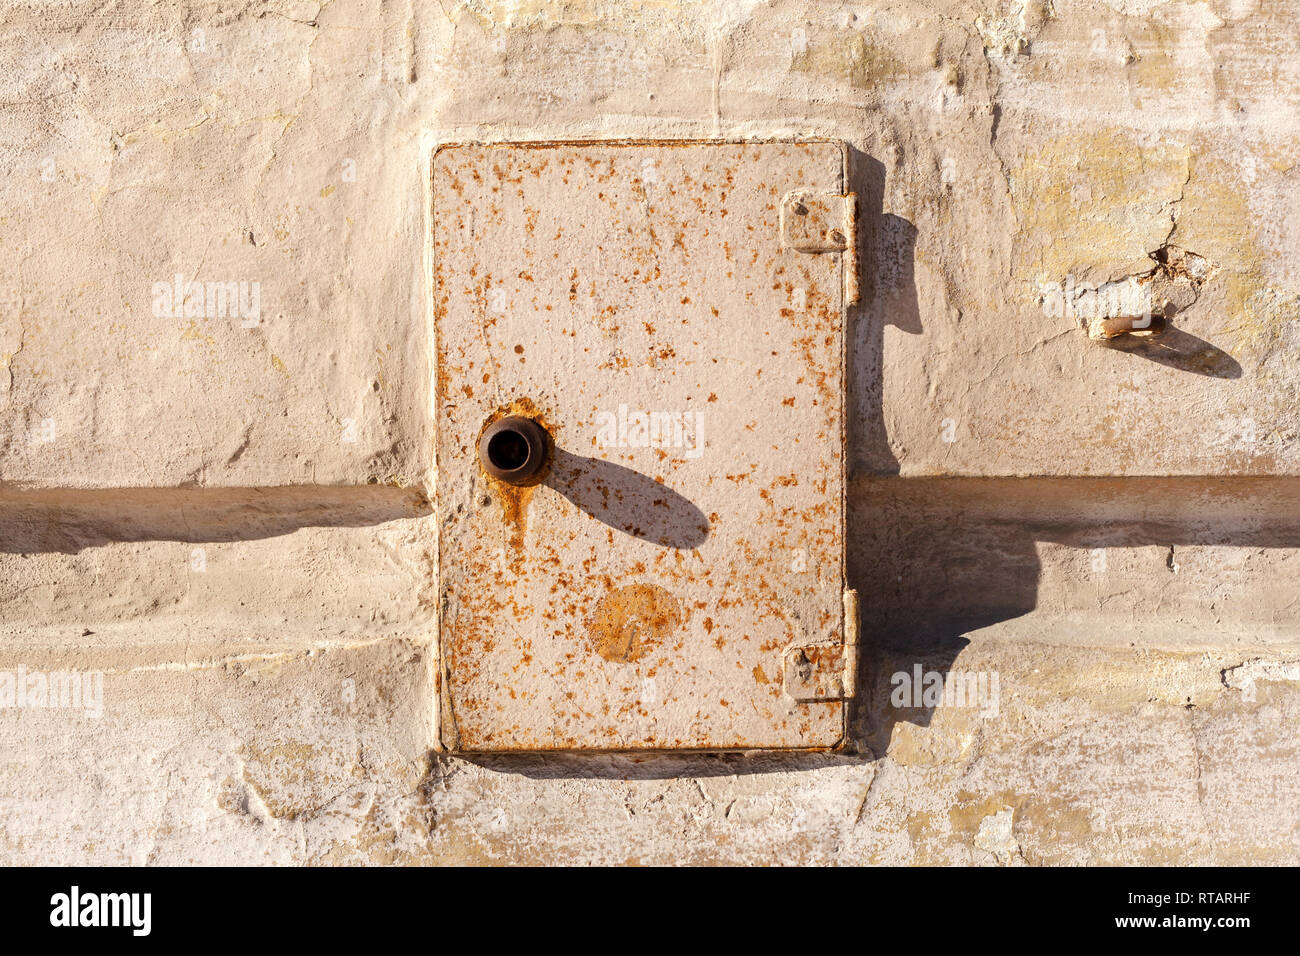 Rusty metal door of the electric box. Old abandoned electrical junction box on the wall of an old house. Stock Photo